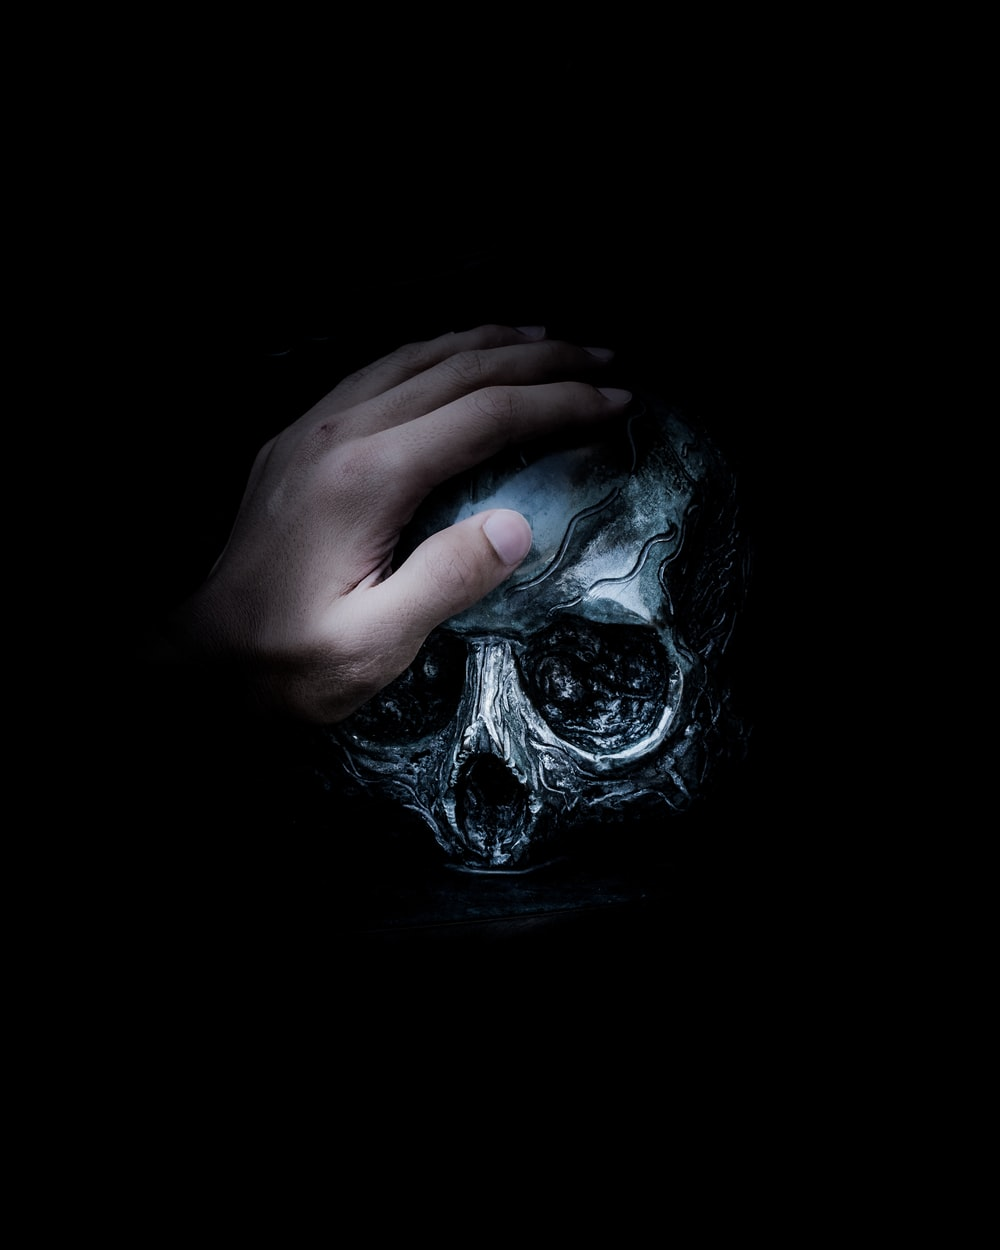 person holding gray skull illustration